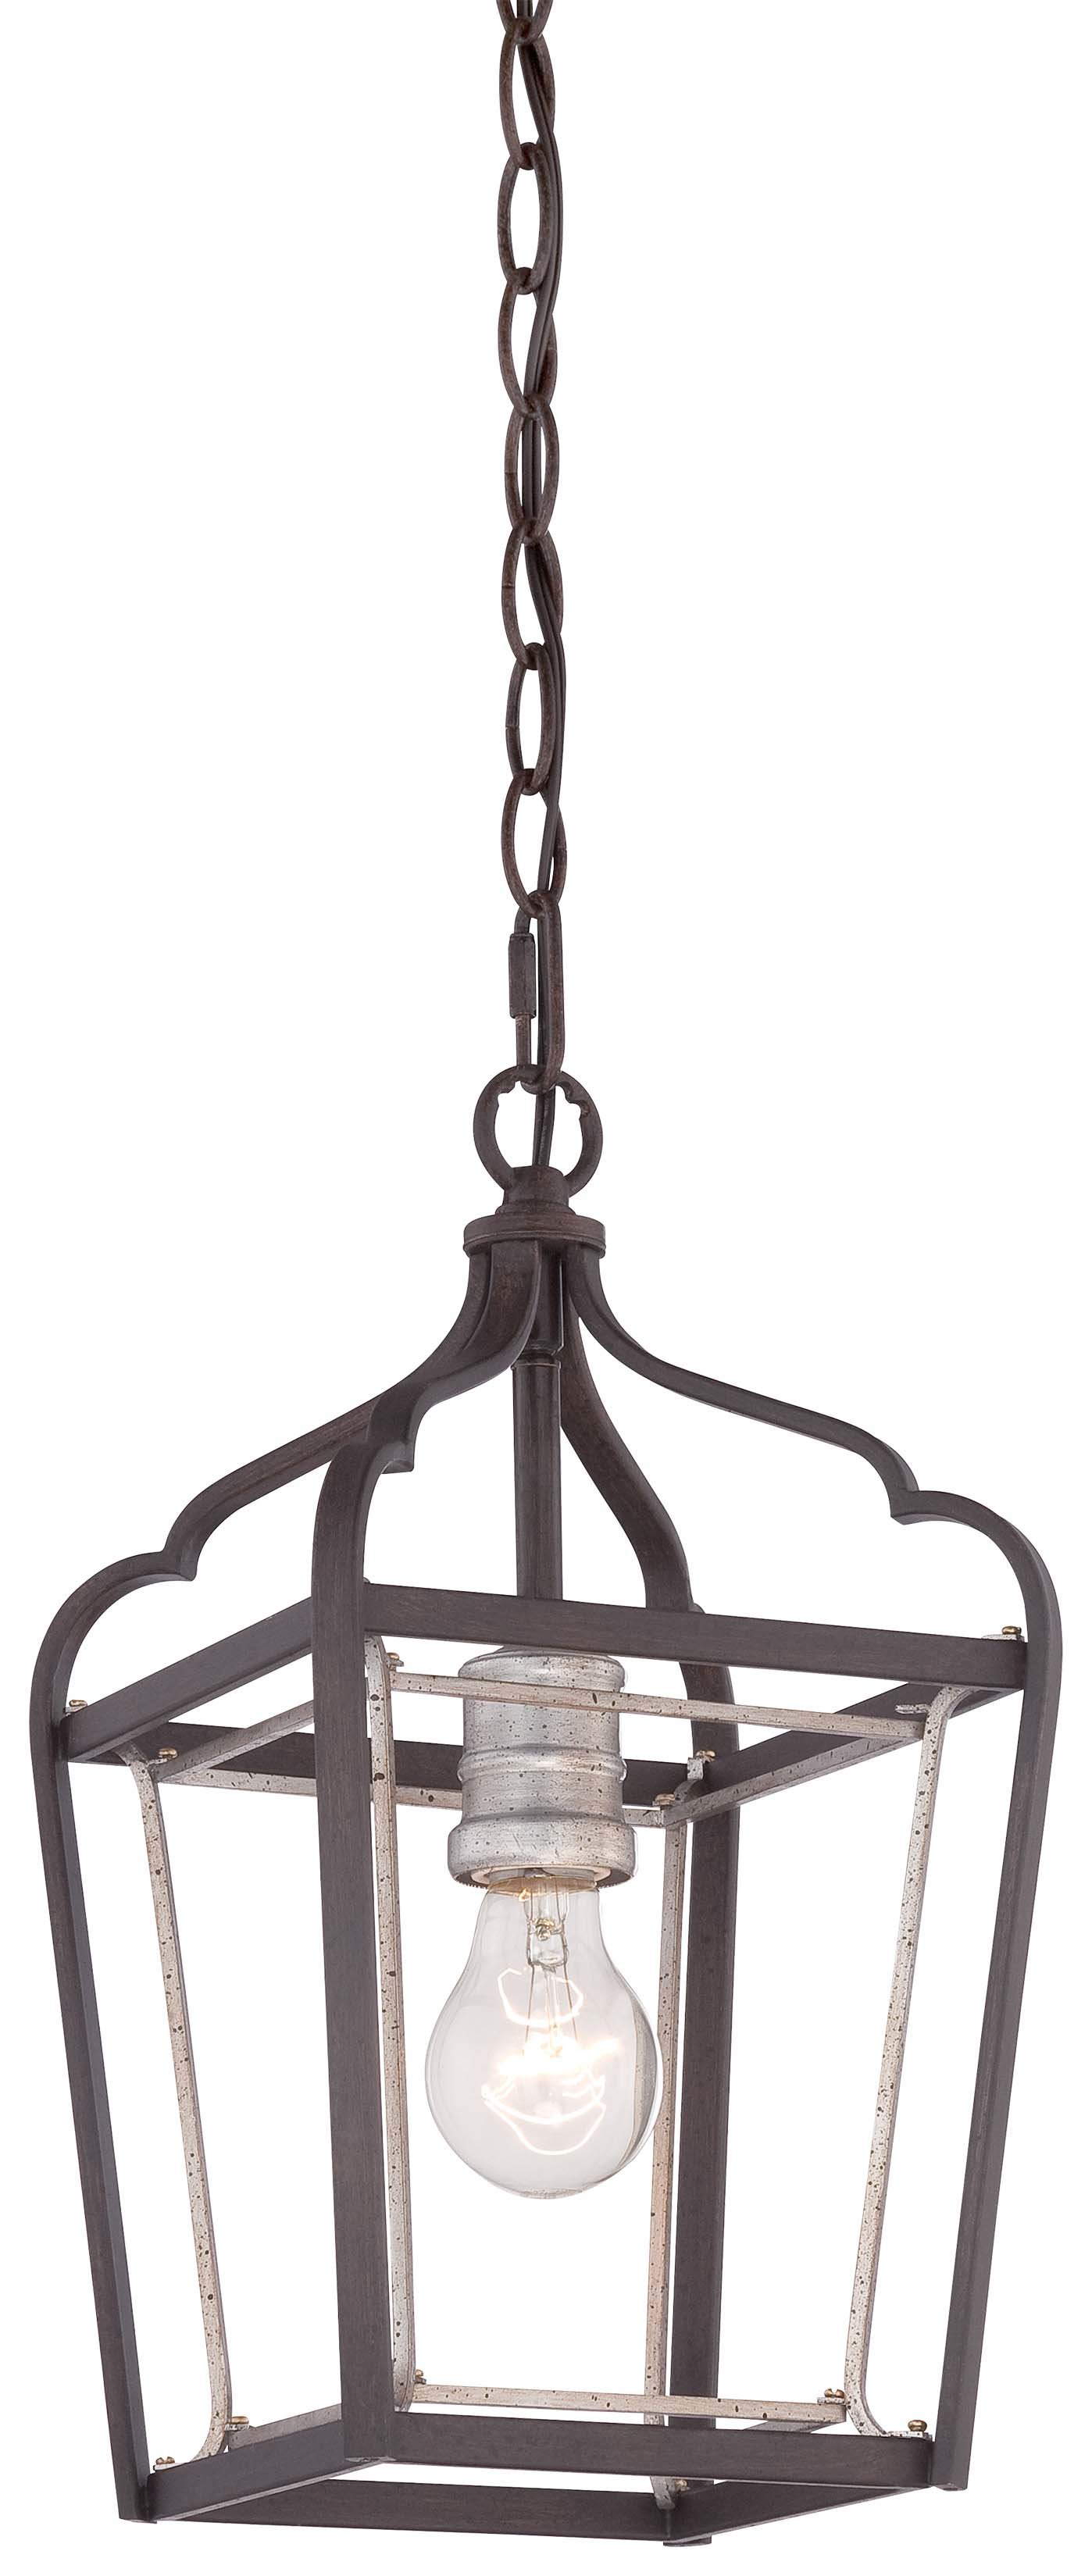 Evangeline 1-Light Lantern Geometric Pendant with regard to Sherri-Ann 3-Light Lantern Square / Rectangle Pendants (Image 7 of 30)